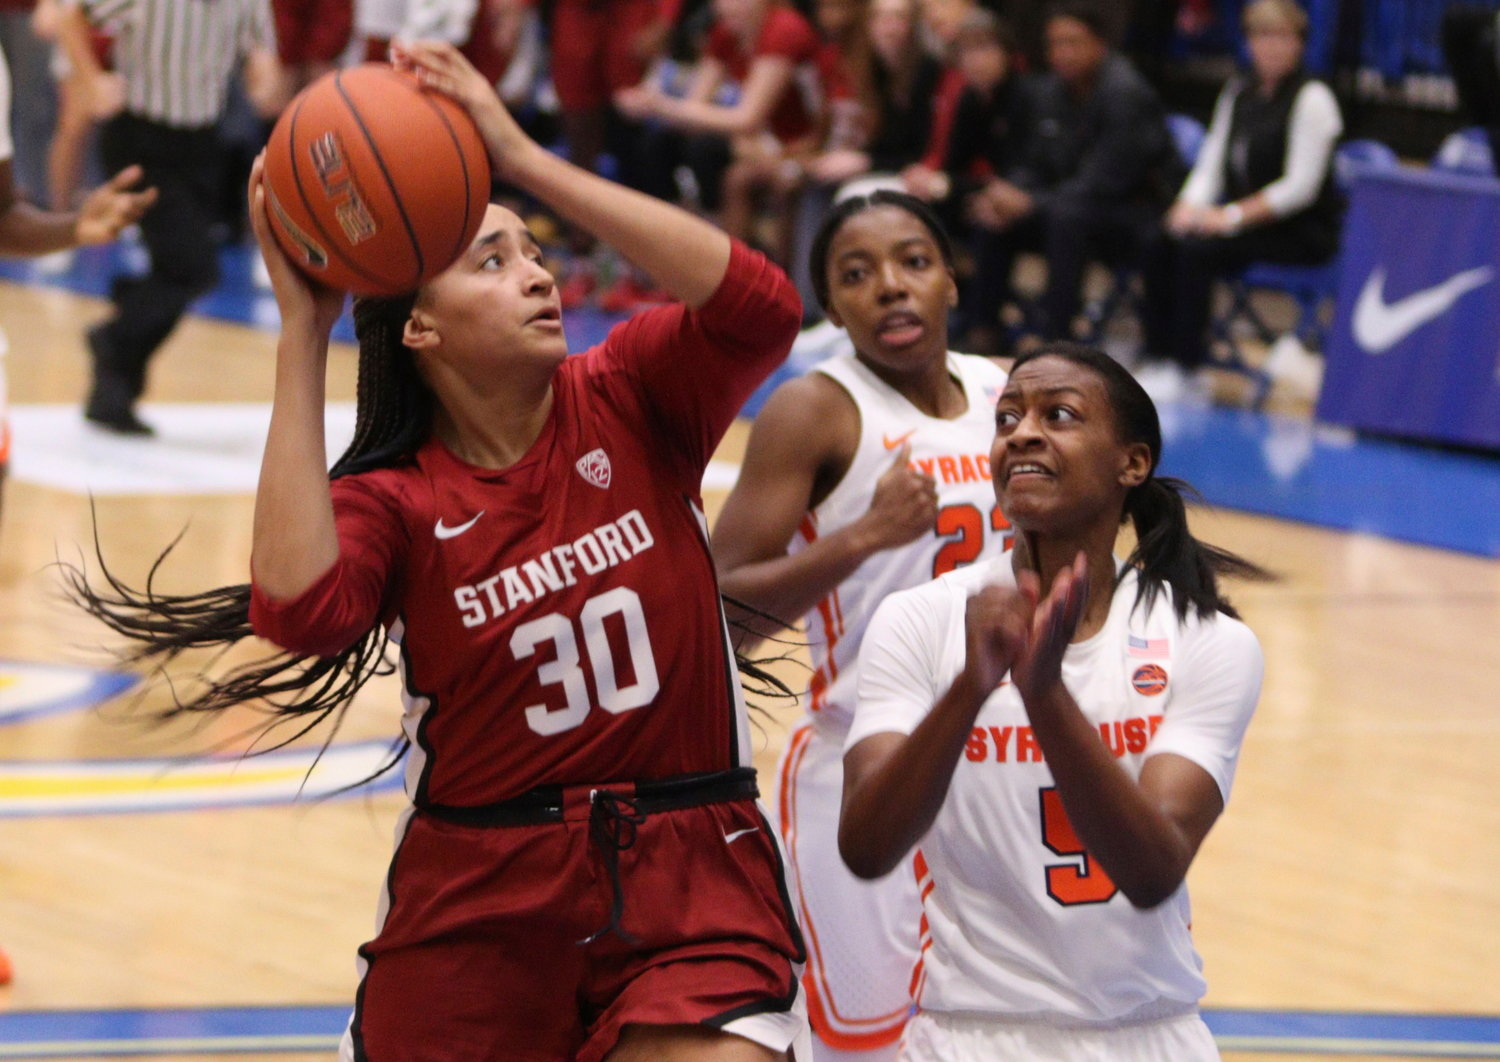 Jump Scores 24 Points As No 3 Stanford Beats No 18